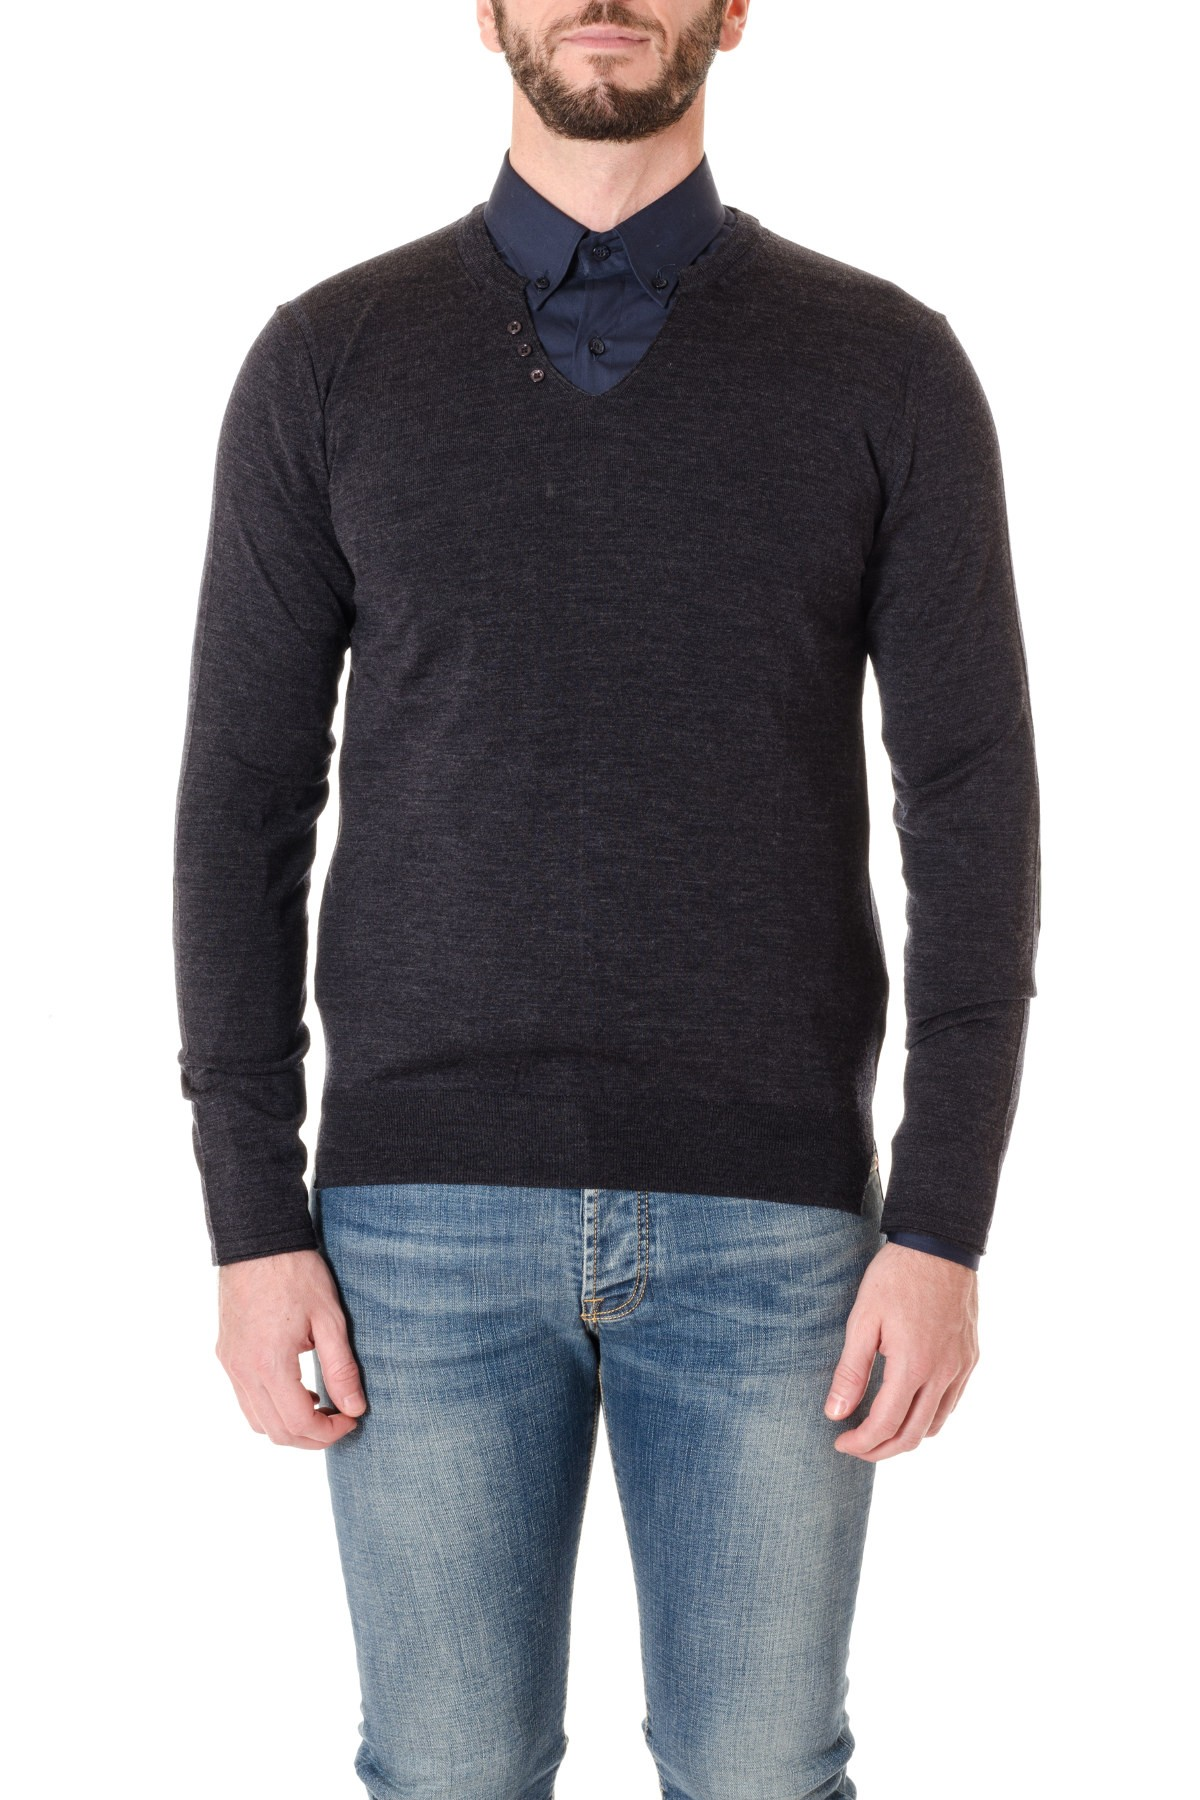 f17d49c8c8 PAOLO PECORA Dark grey V-neck sweater for men F W 16-17 - Rione Fontana